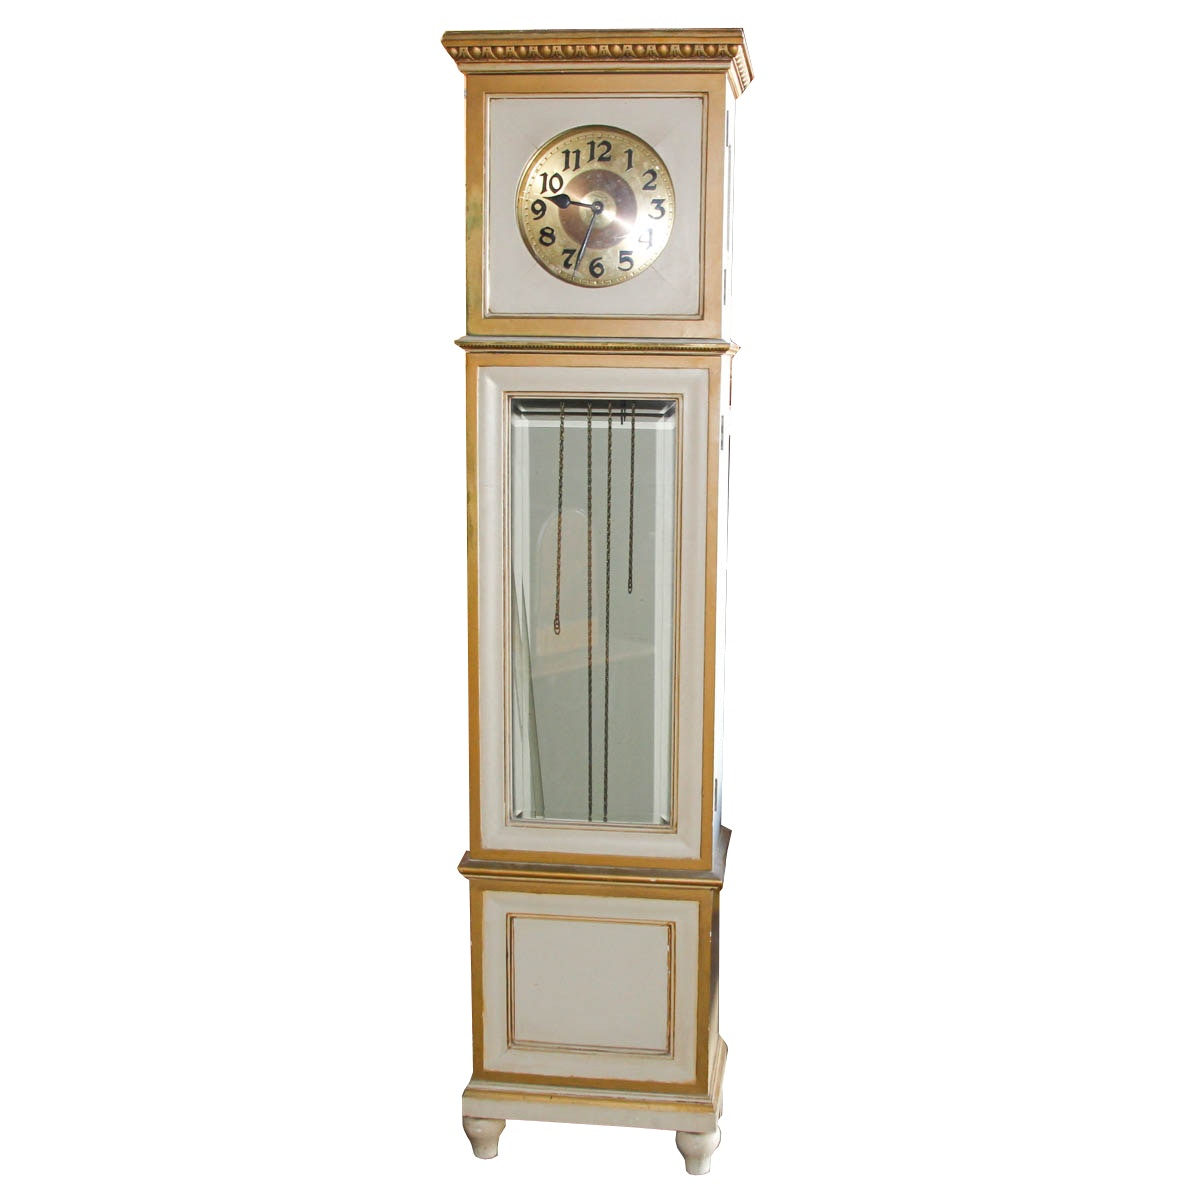 Gilt Accented German Grandfather Clock